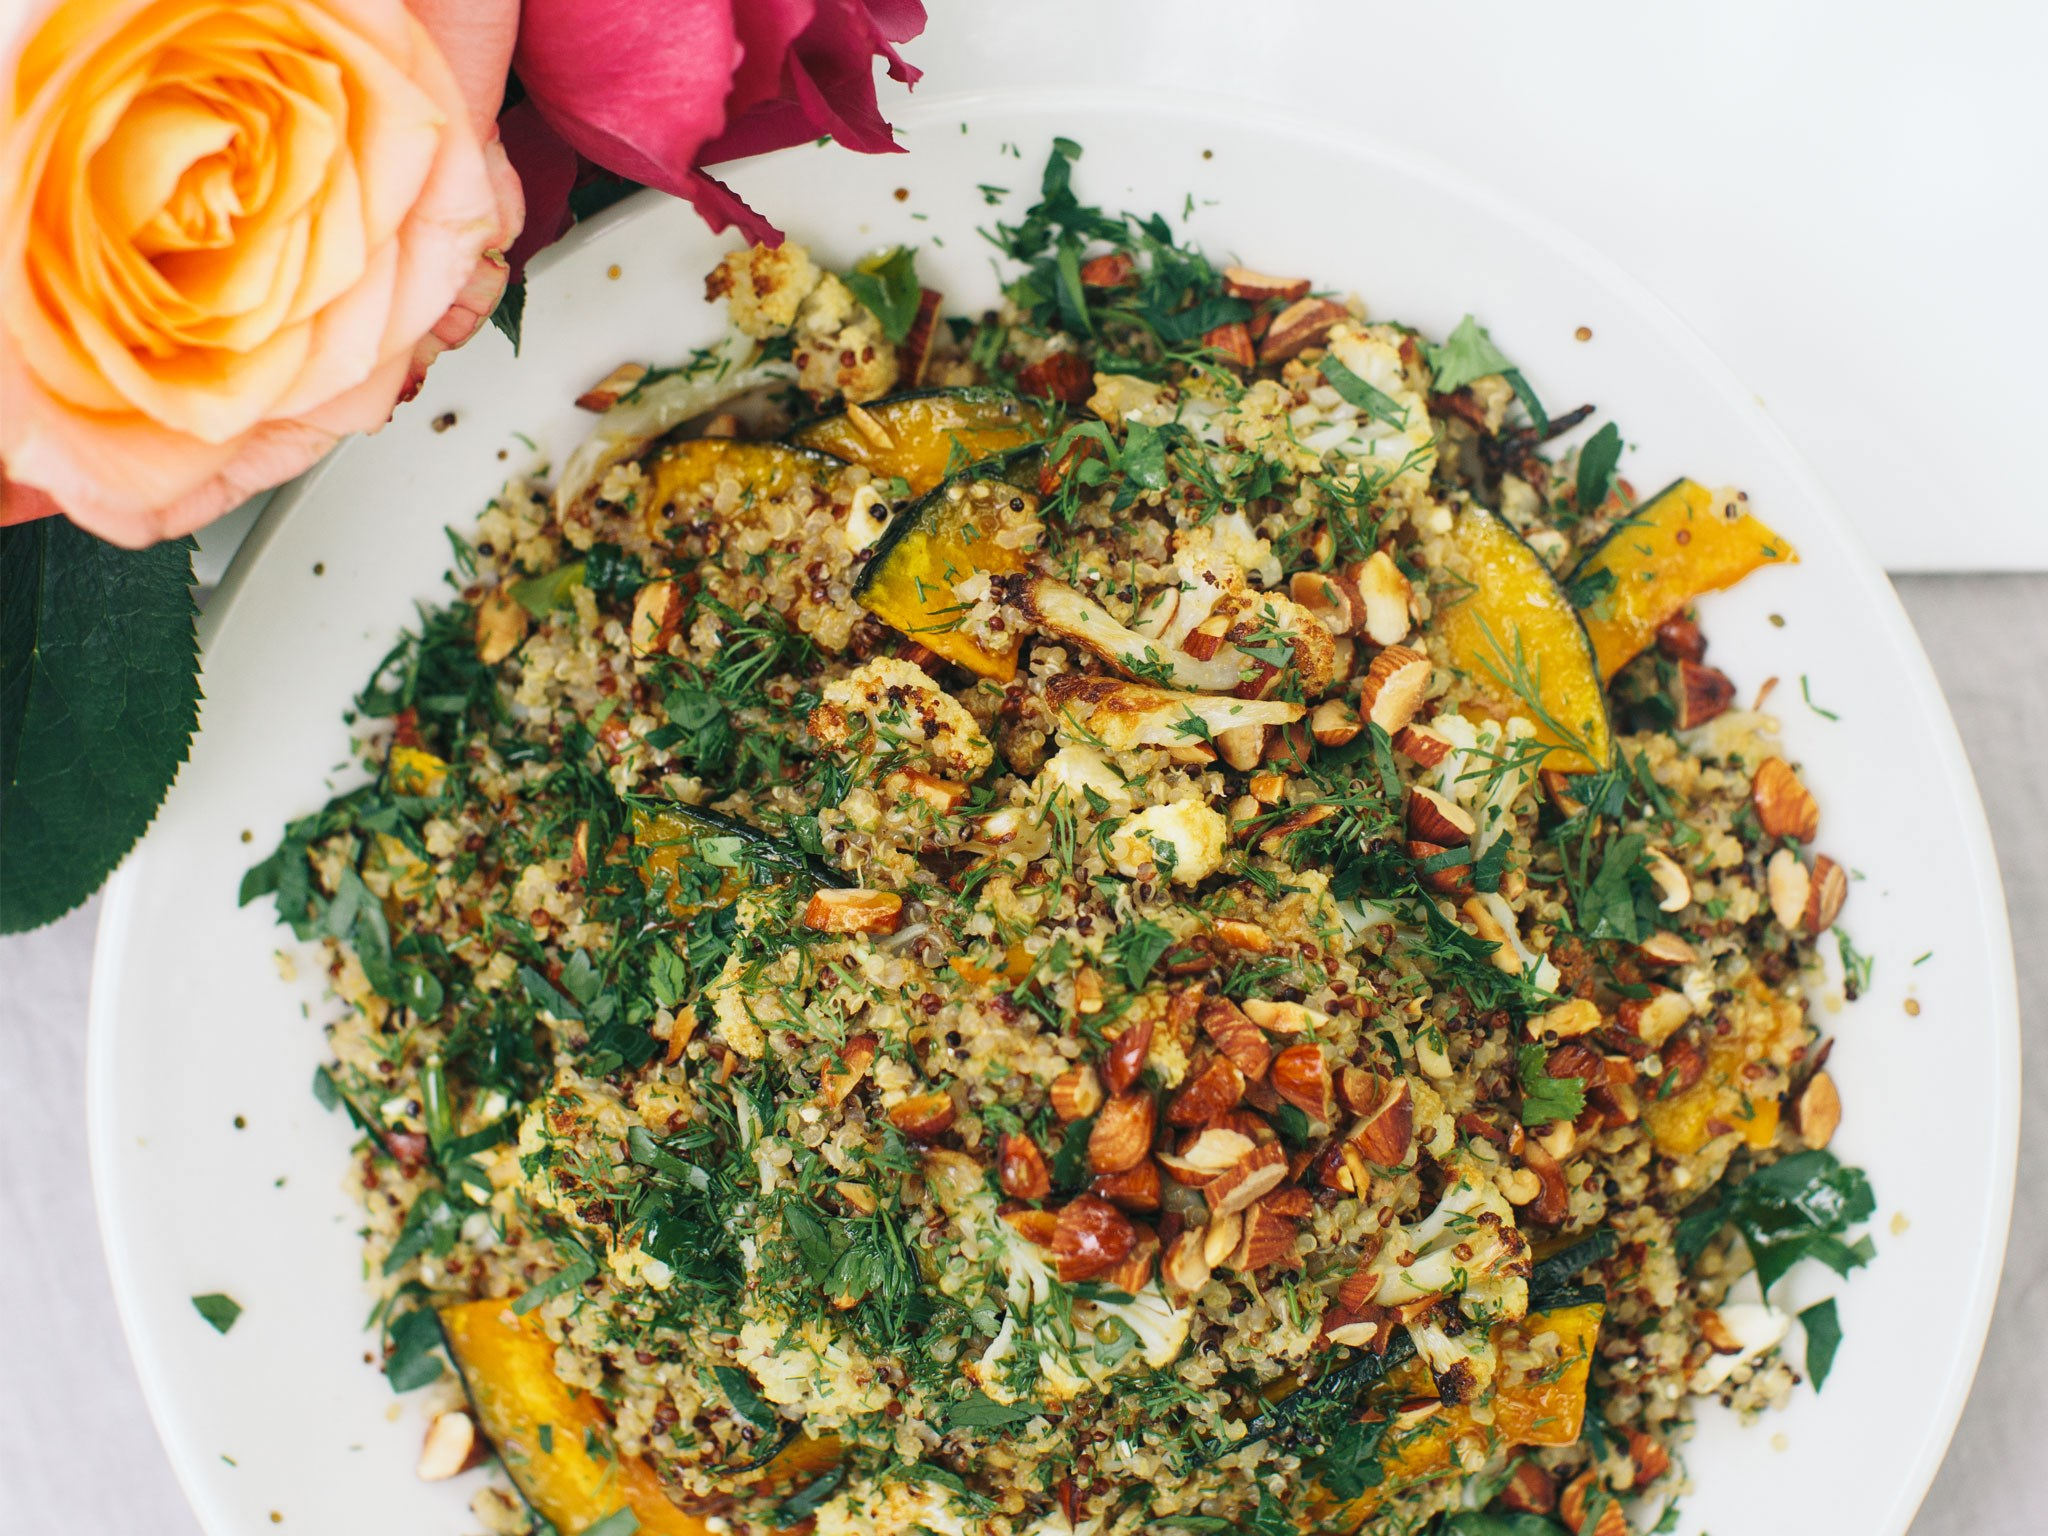 Quinoa and buttercup salad with tahini and pomegranate dressing